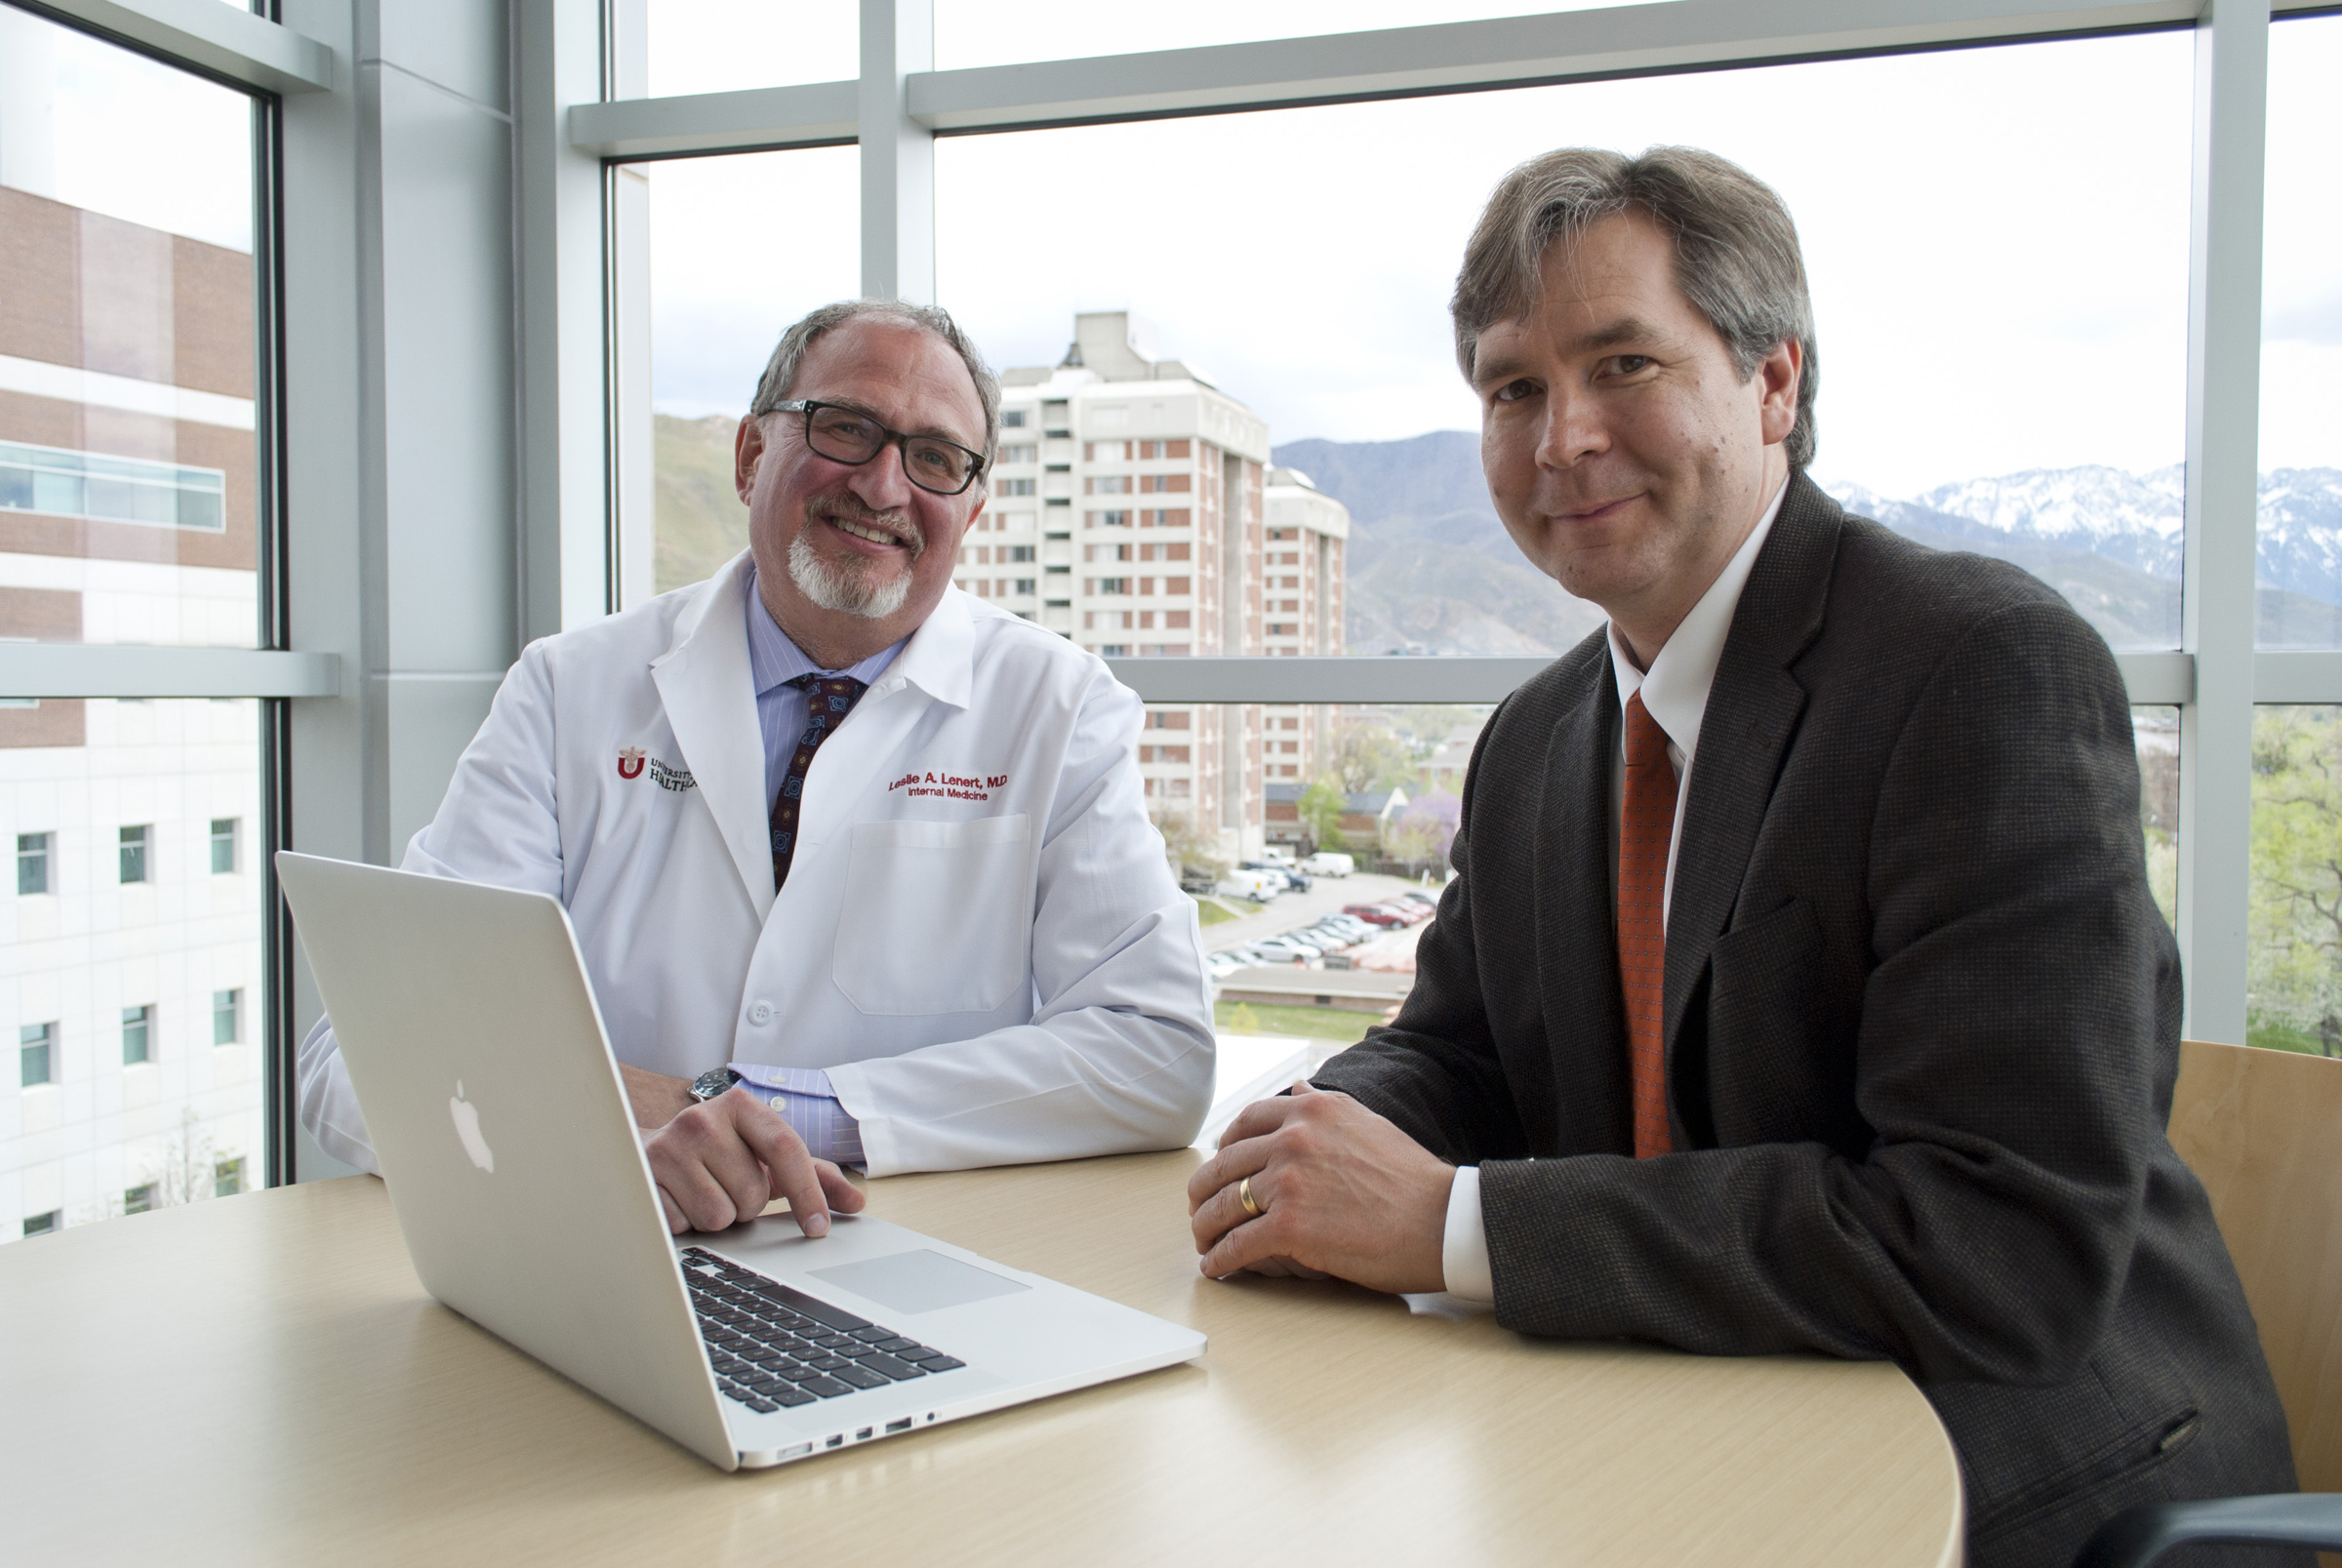 University of Utah faculty members Leslie Lenert (left) and Lewis Frey invented a program that recommends health care treatment options to doctors and patients.